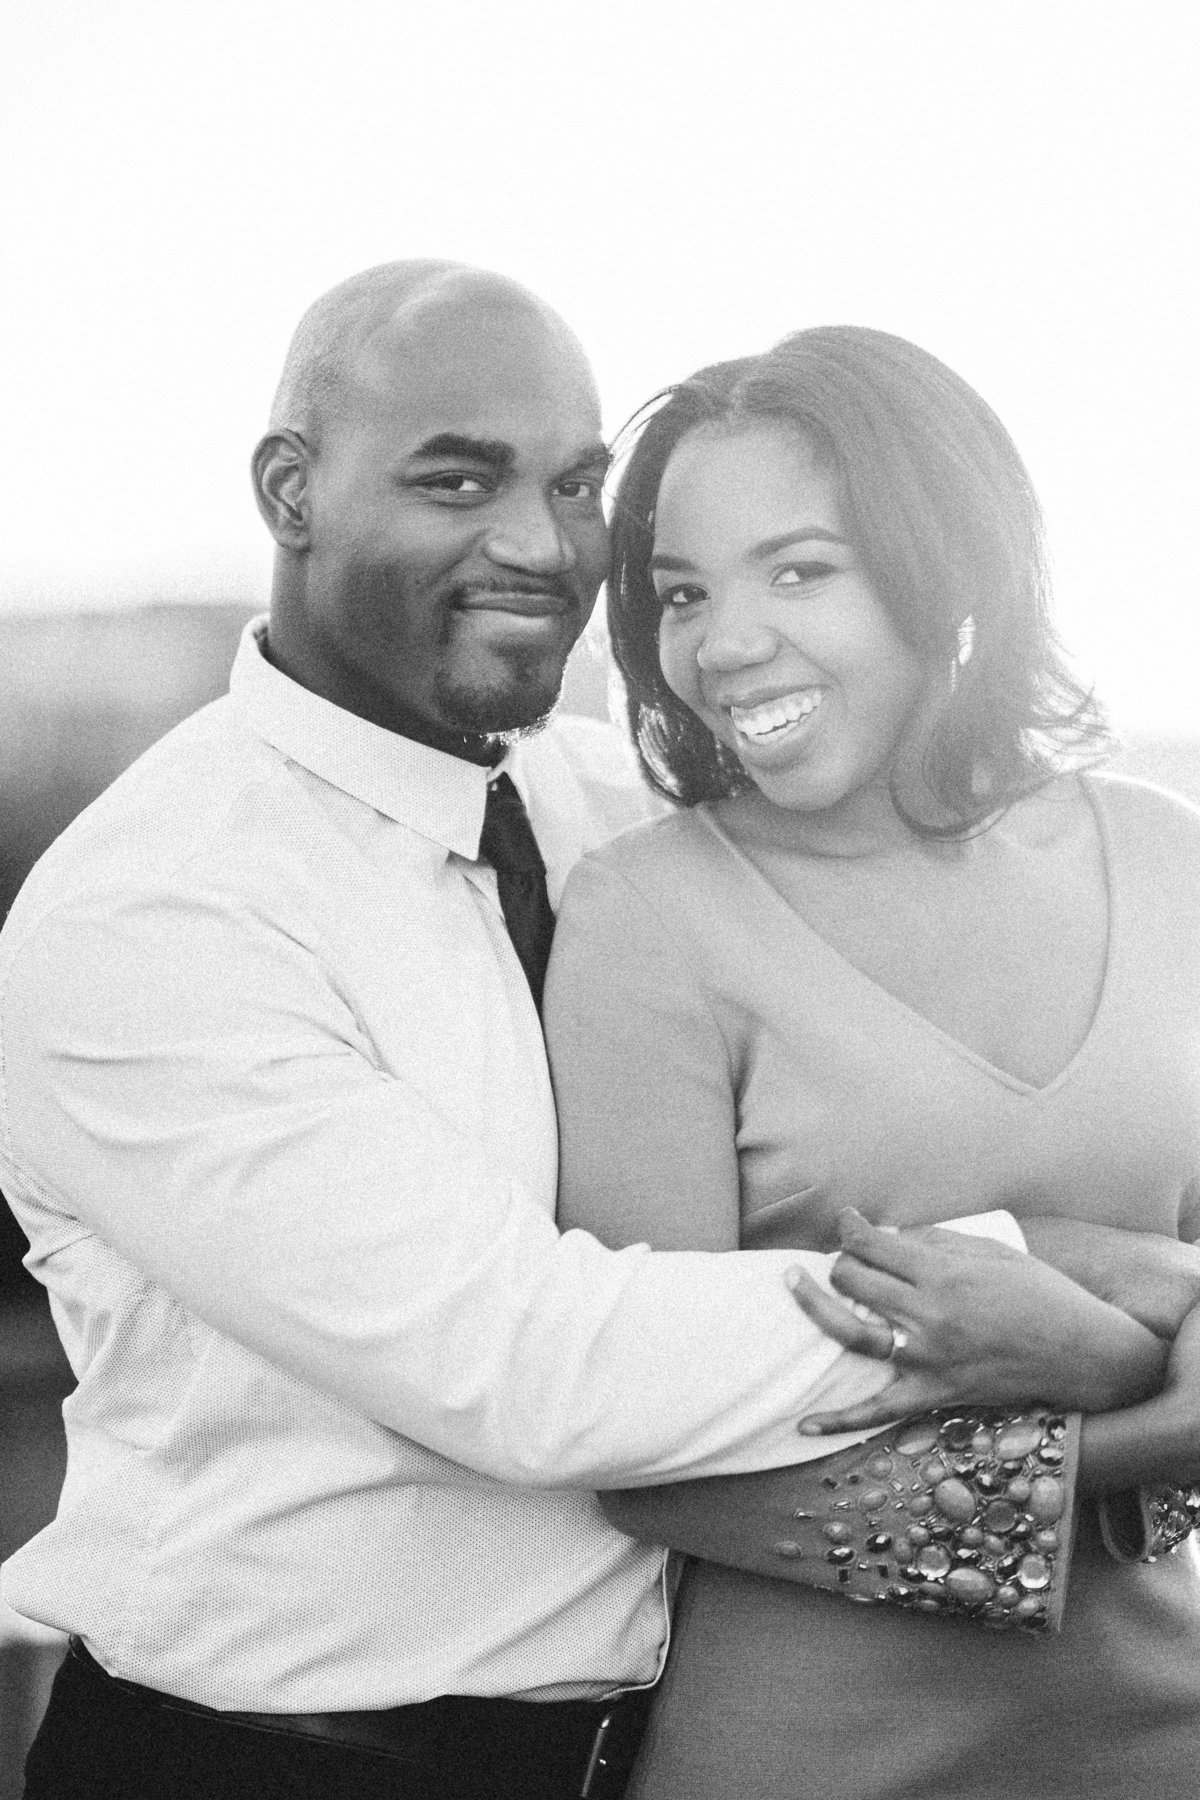 joy_monet_bryan_durham_engagement_2017-22